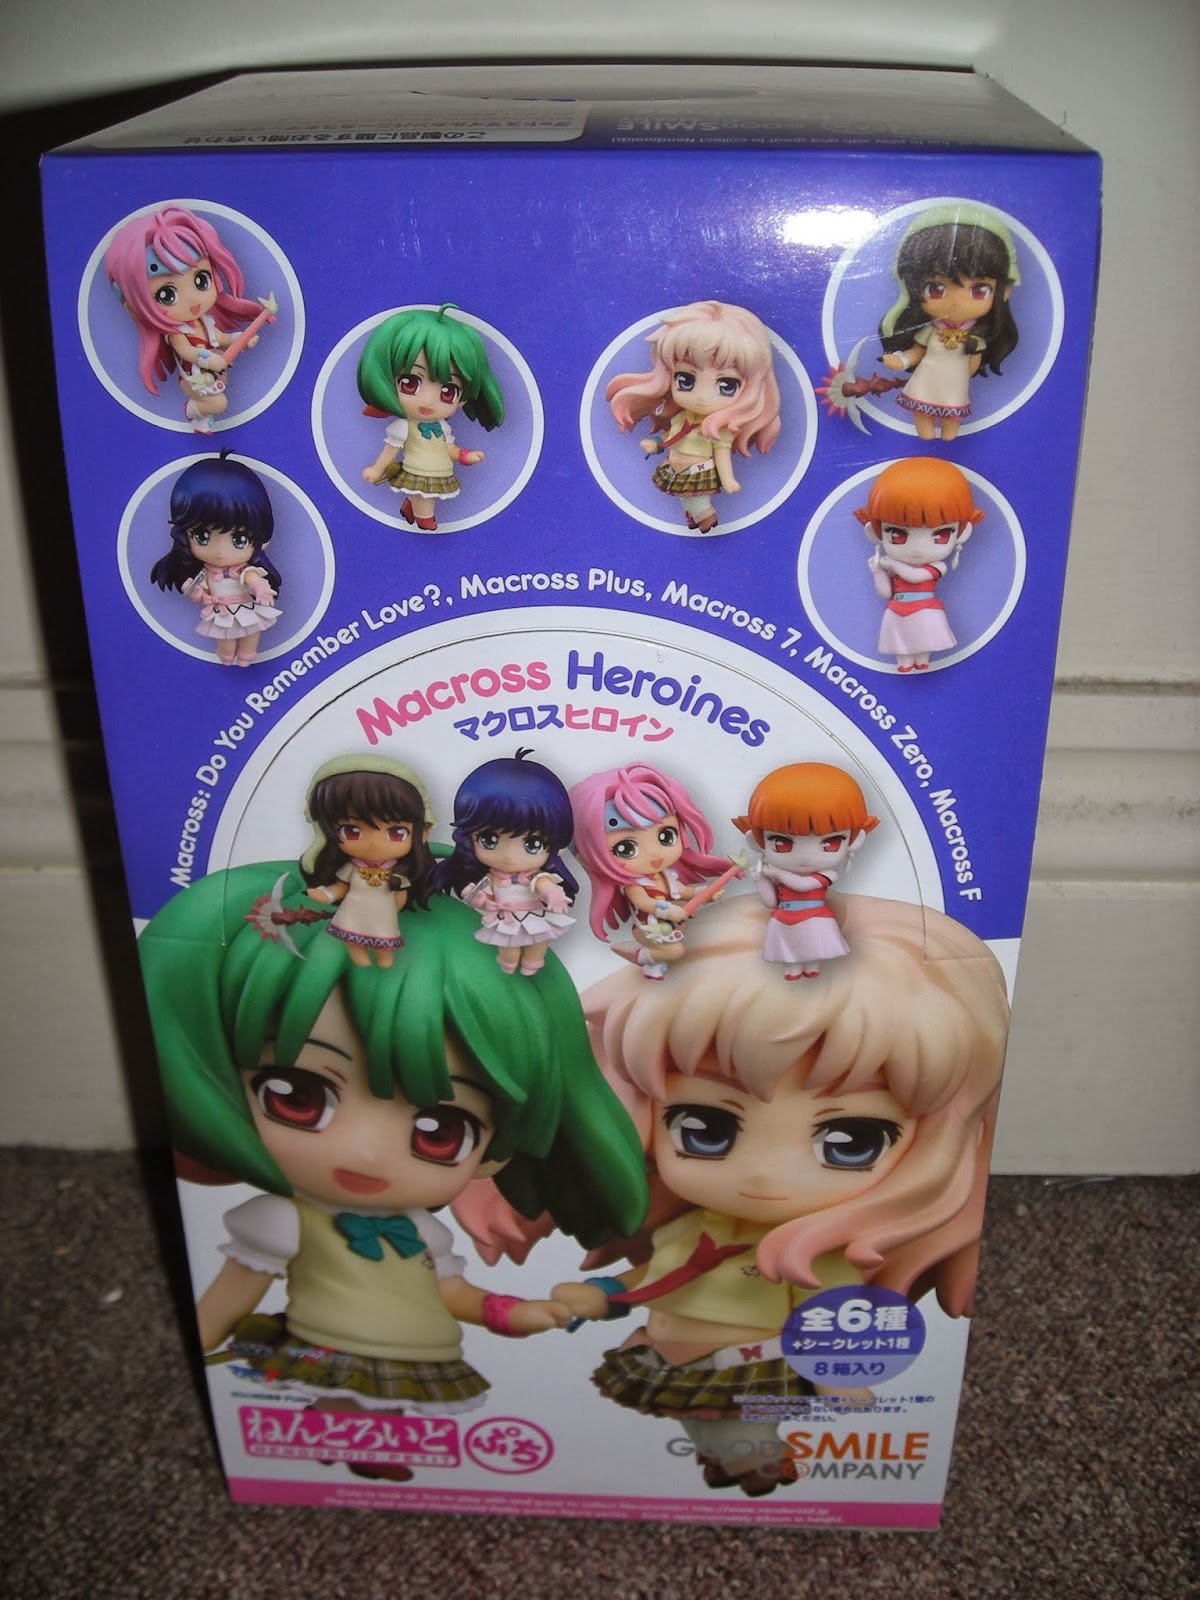 My Shiny Toy Robots: Toybox REVIEW: Nendoroid Petite Macross